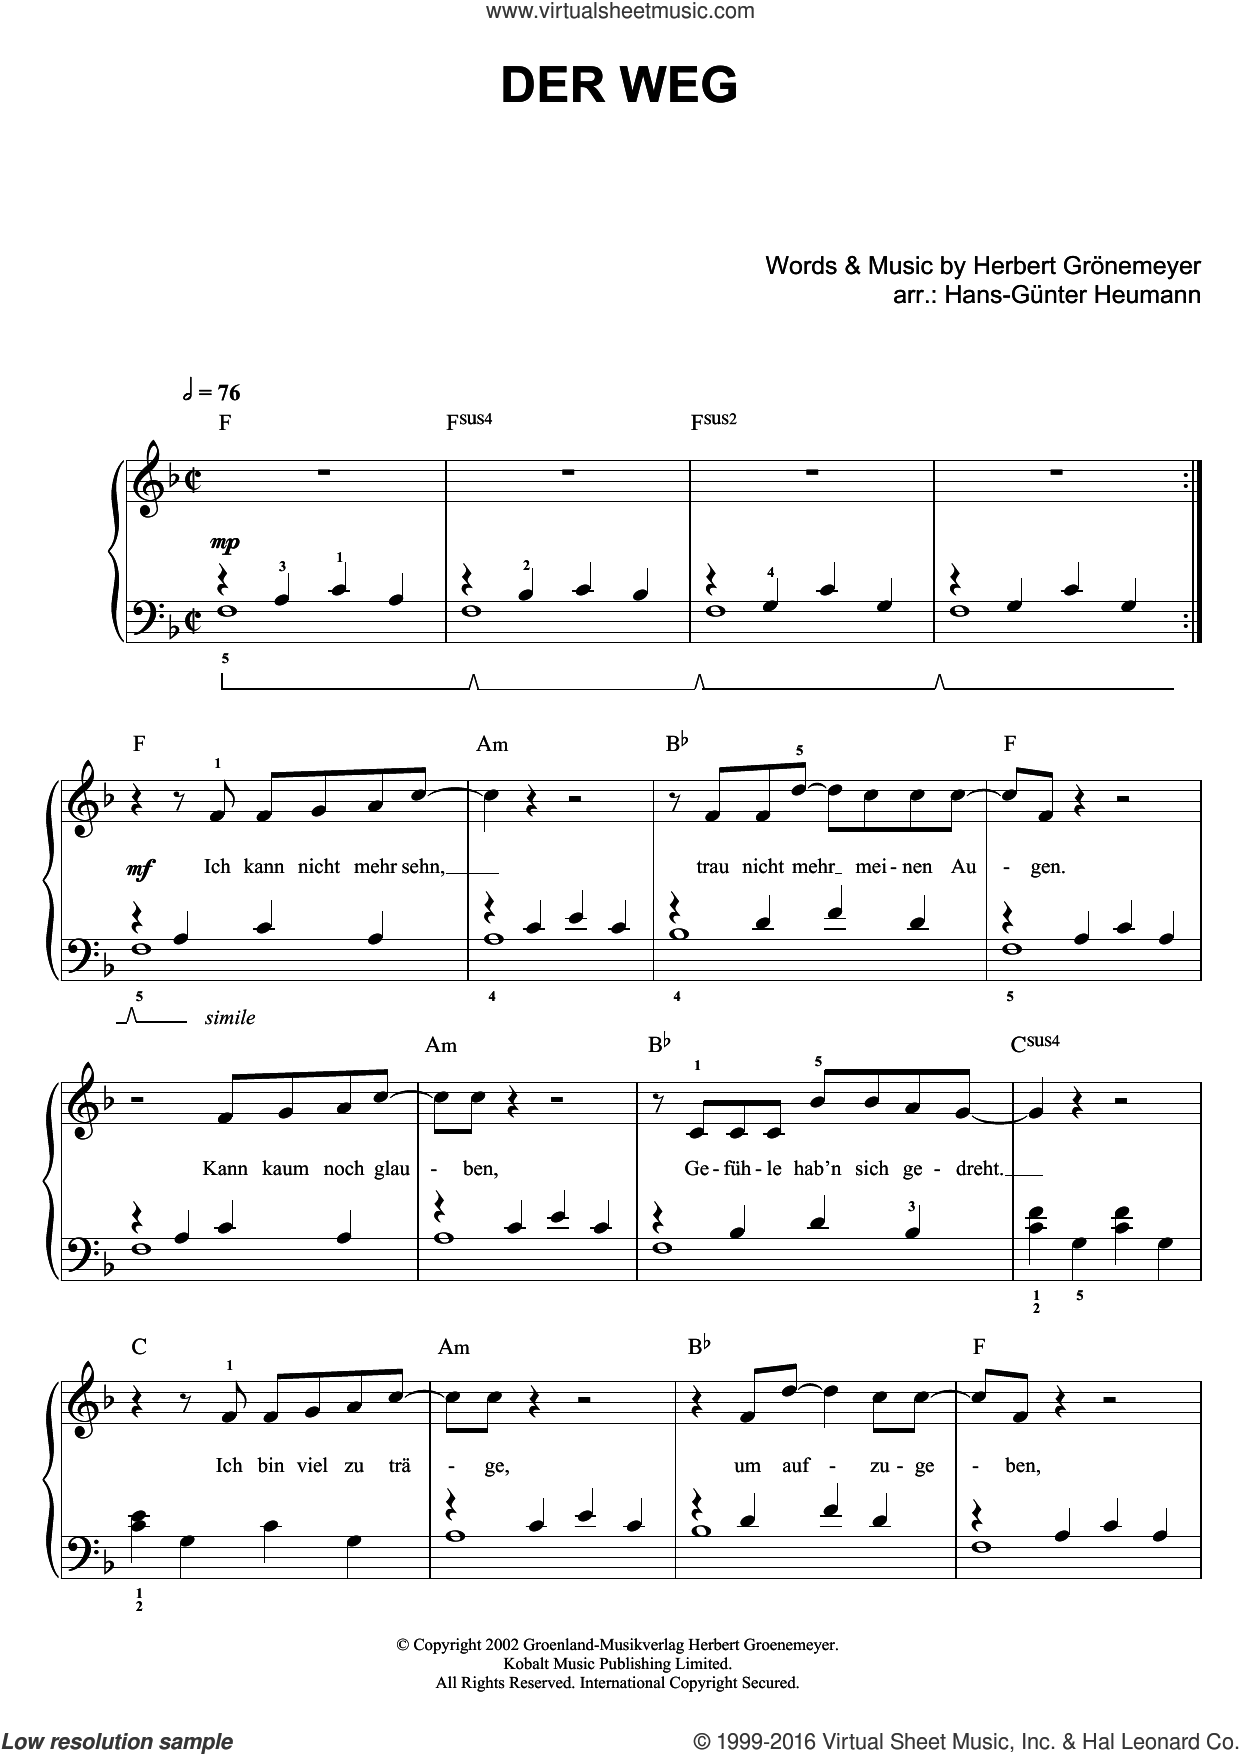 Der Weg sheet music for piano solo by Herbert Groenemeyer, easy skill level